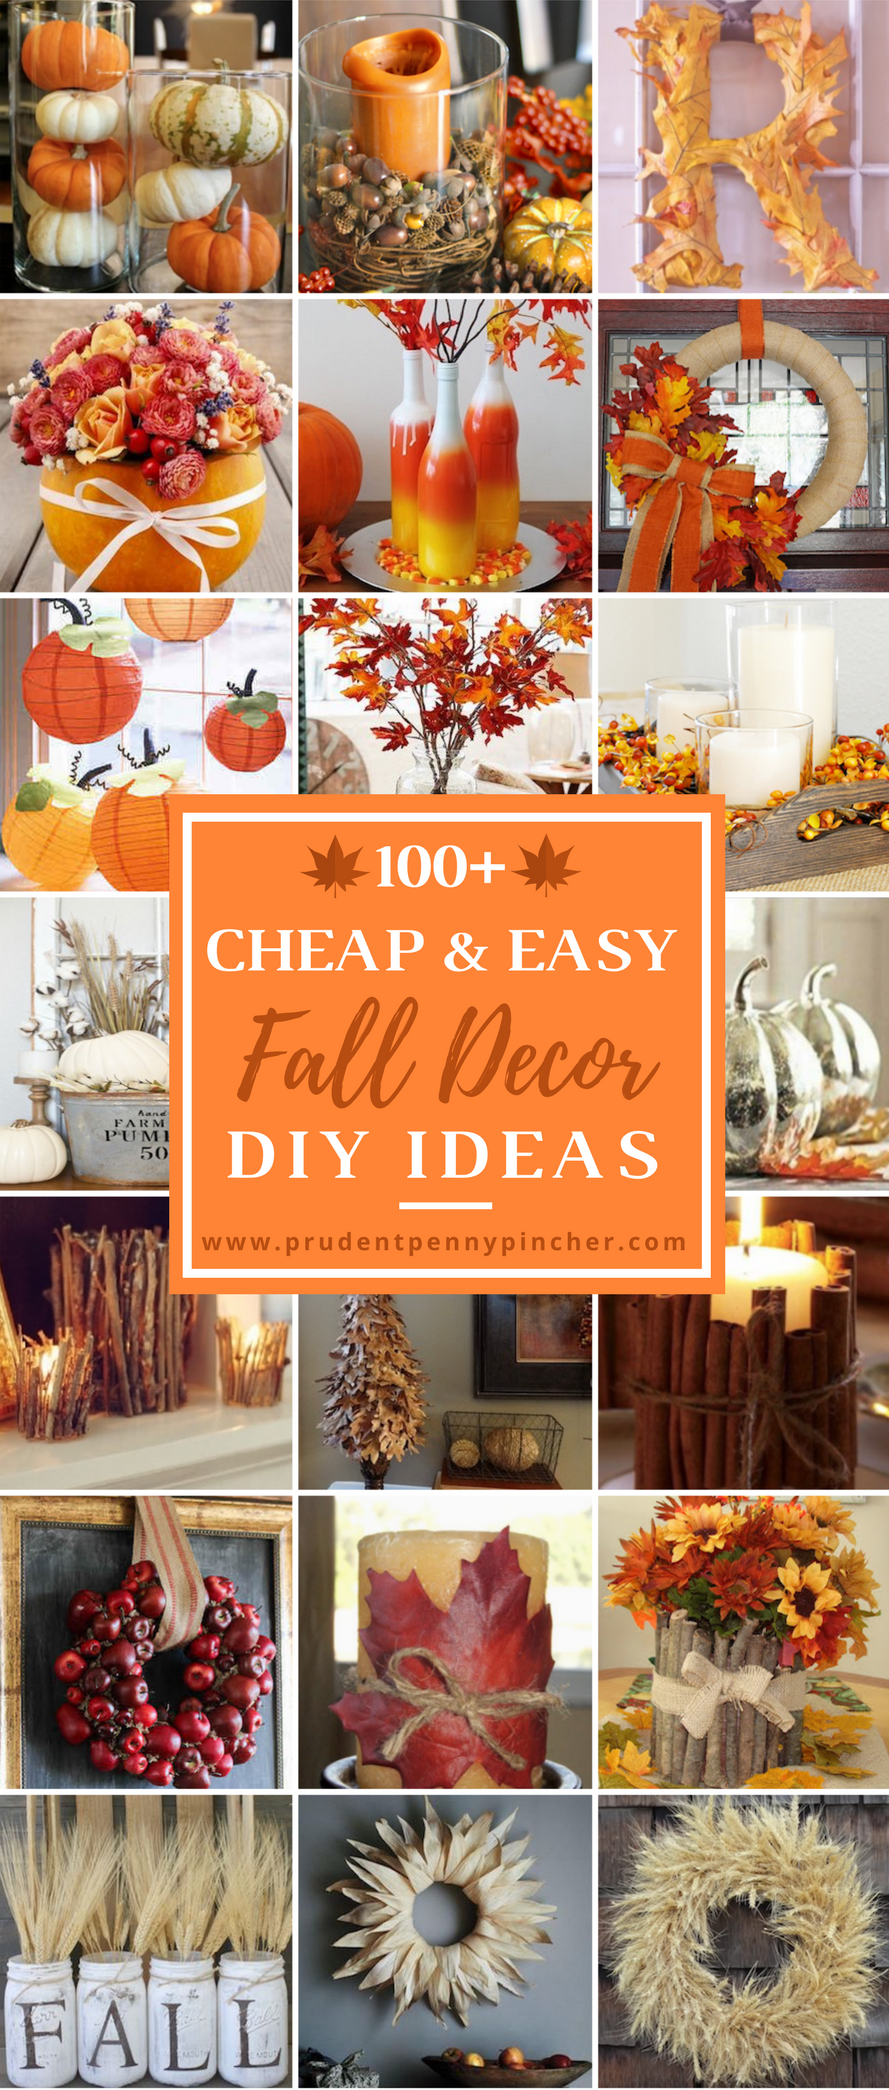 fall is my favorite time of year pumpkin everything cool weather autumn foliage and fun fall activities so obviously i love decorating for fall - Diy Fall Decor